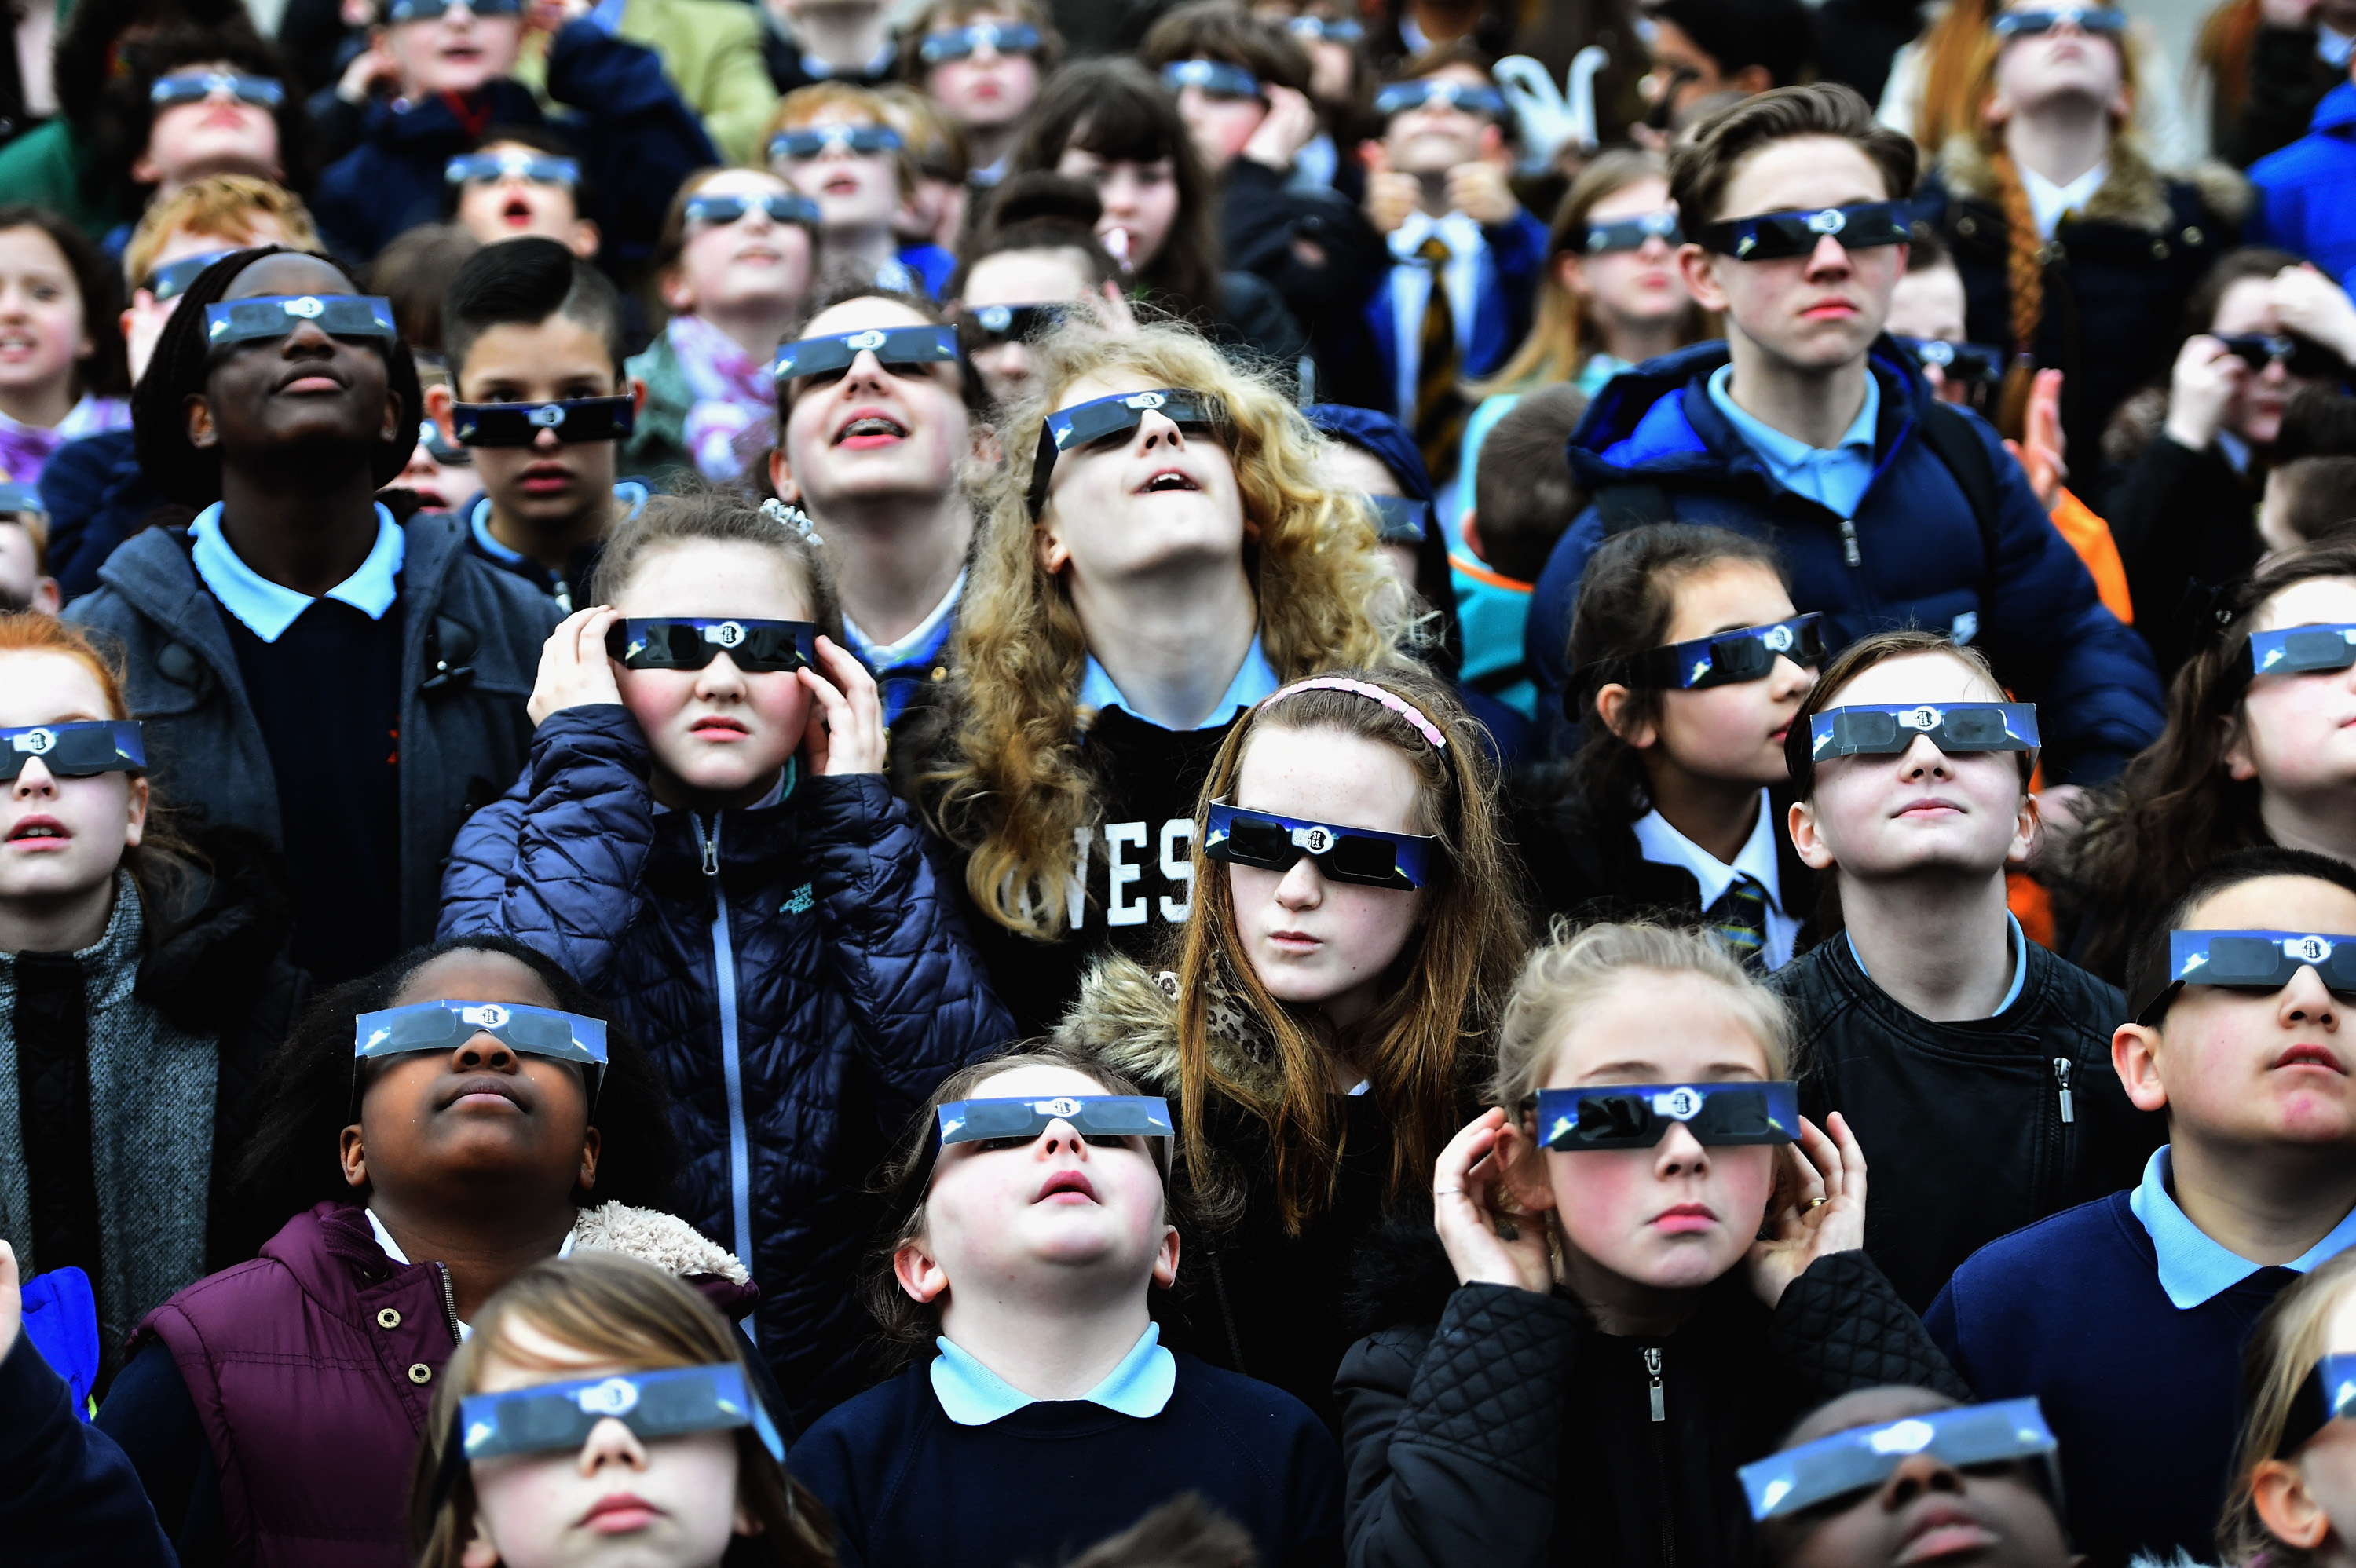 Why You Ll Have To Wear Those Cool Glasses To Watch The Eclipse